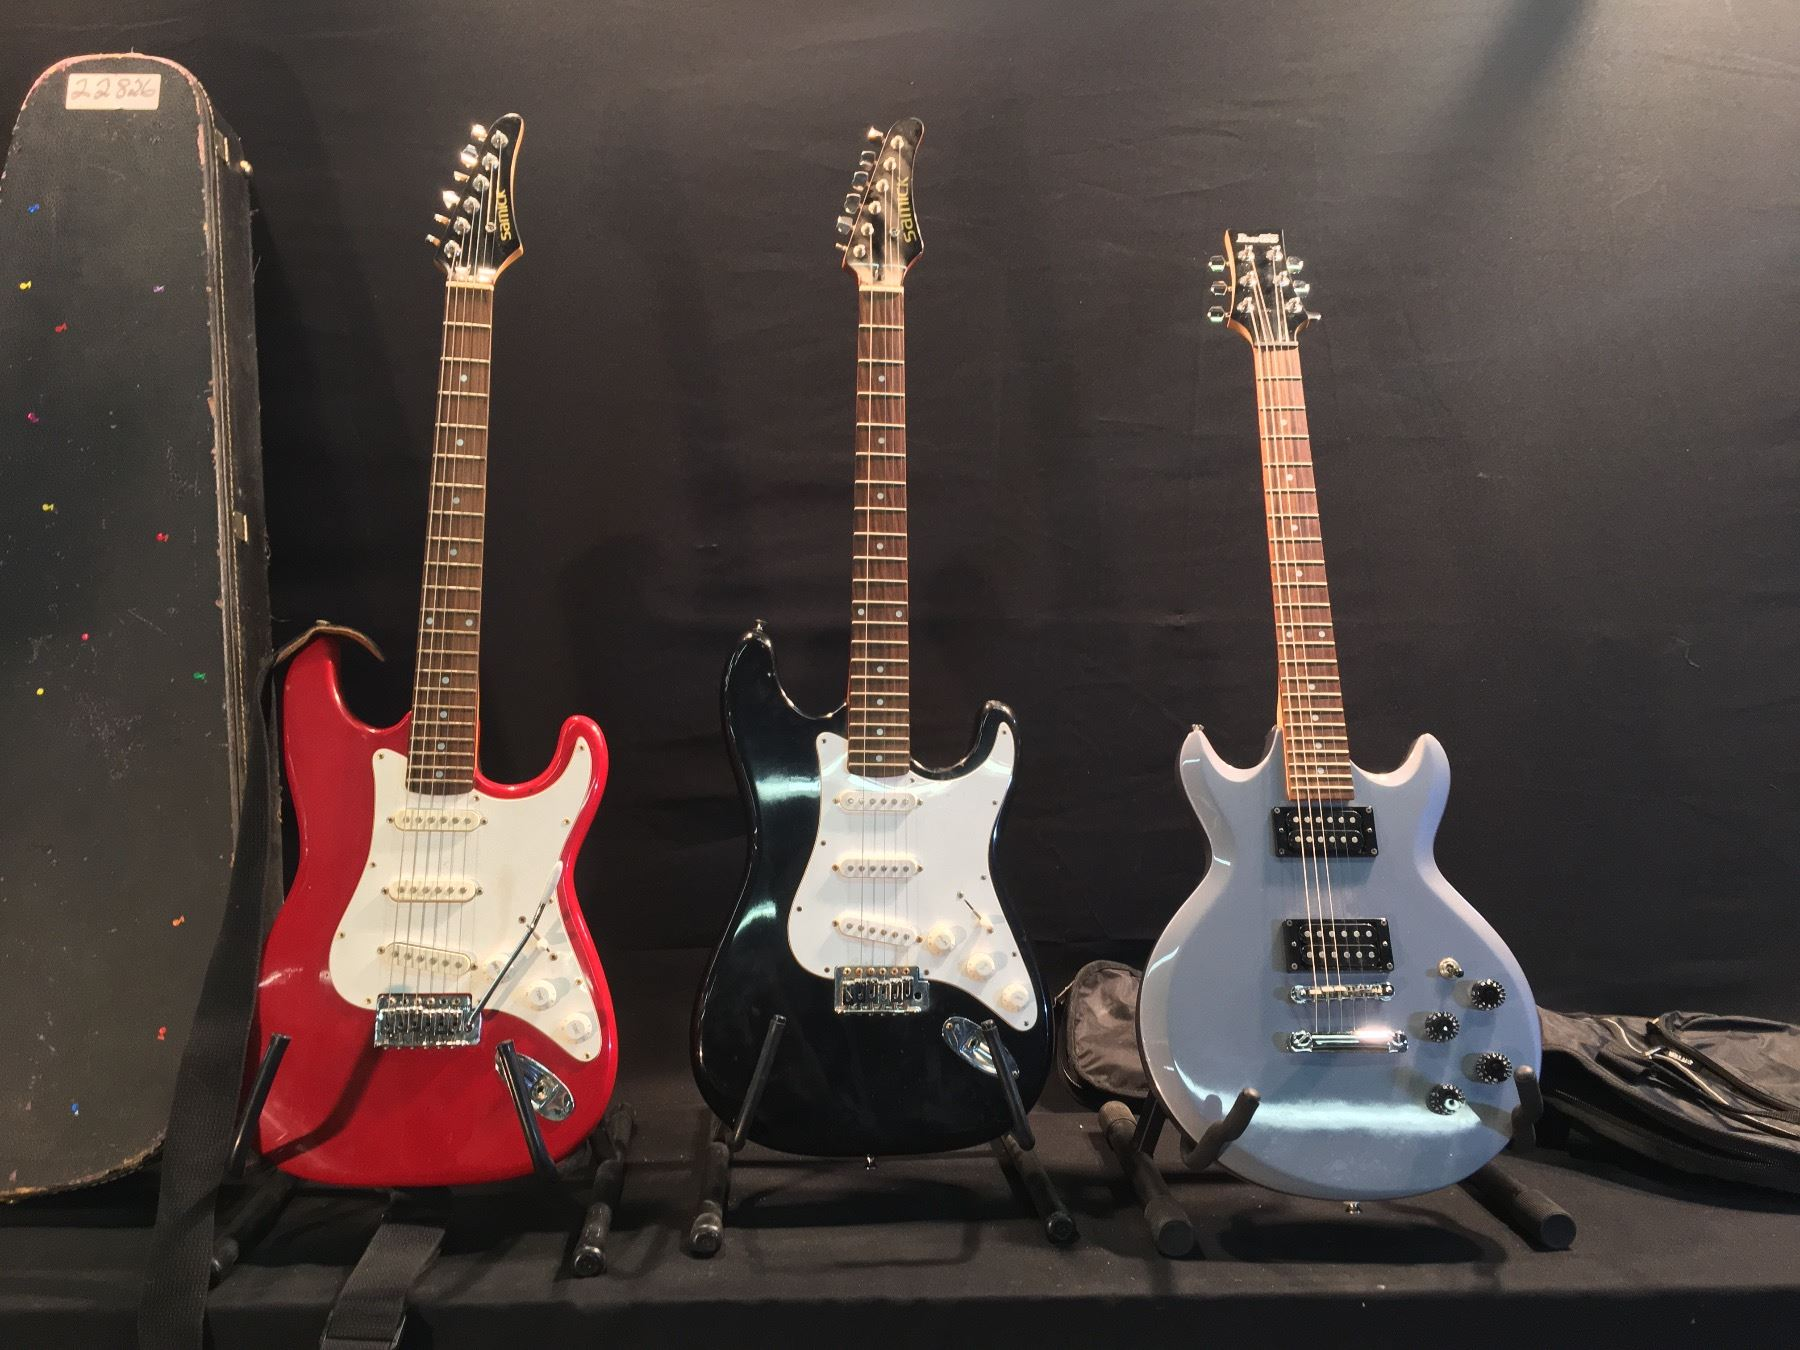 Famous Hss Strat Wiring Small Di Marizo Clean Strat Hss Wiring Free Tsb Youthful Ibanez Gsr100 Bass DarkSolar Panel Installation Diagram 3 GUITARS: IBANEZ GAX70 ELECTRIC GUITAR WITH SOFT SHELL CASE ..